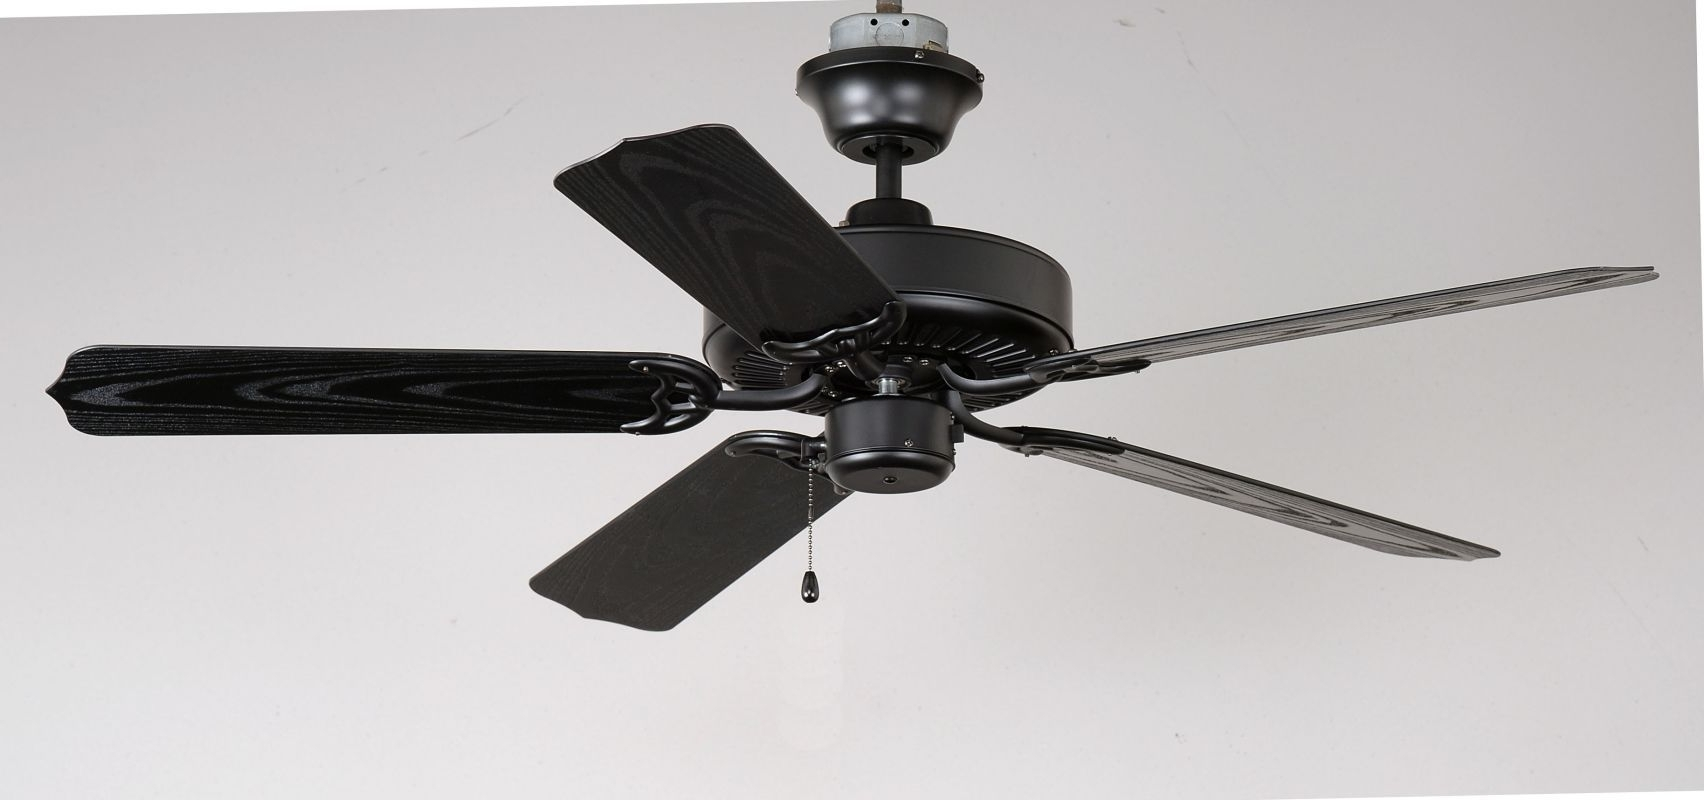 "Ellington Fans Wod525P Cove Harbor 52"" 5 Blade Outdoor Ceiling Fan With Regard To Current Ellington Outdoor Ceiling Fans (View 6 of 20)"